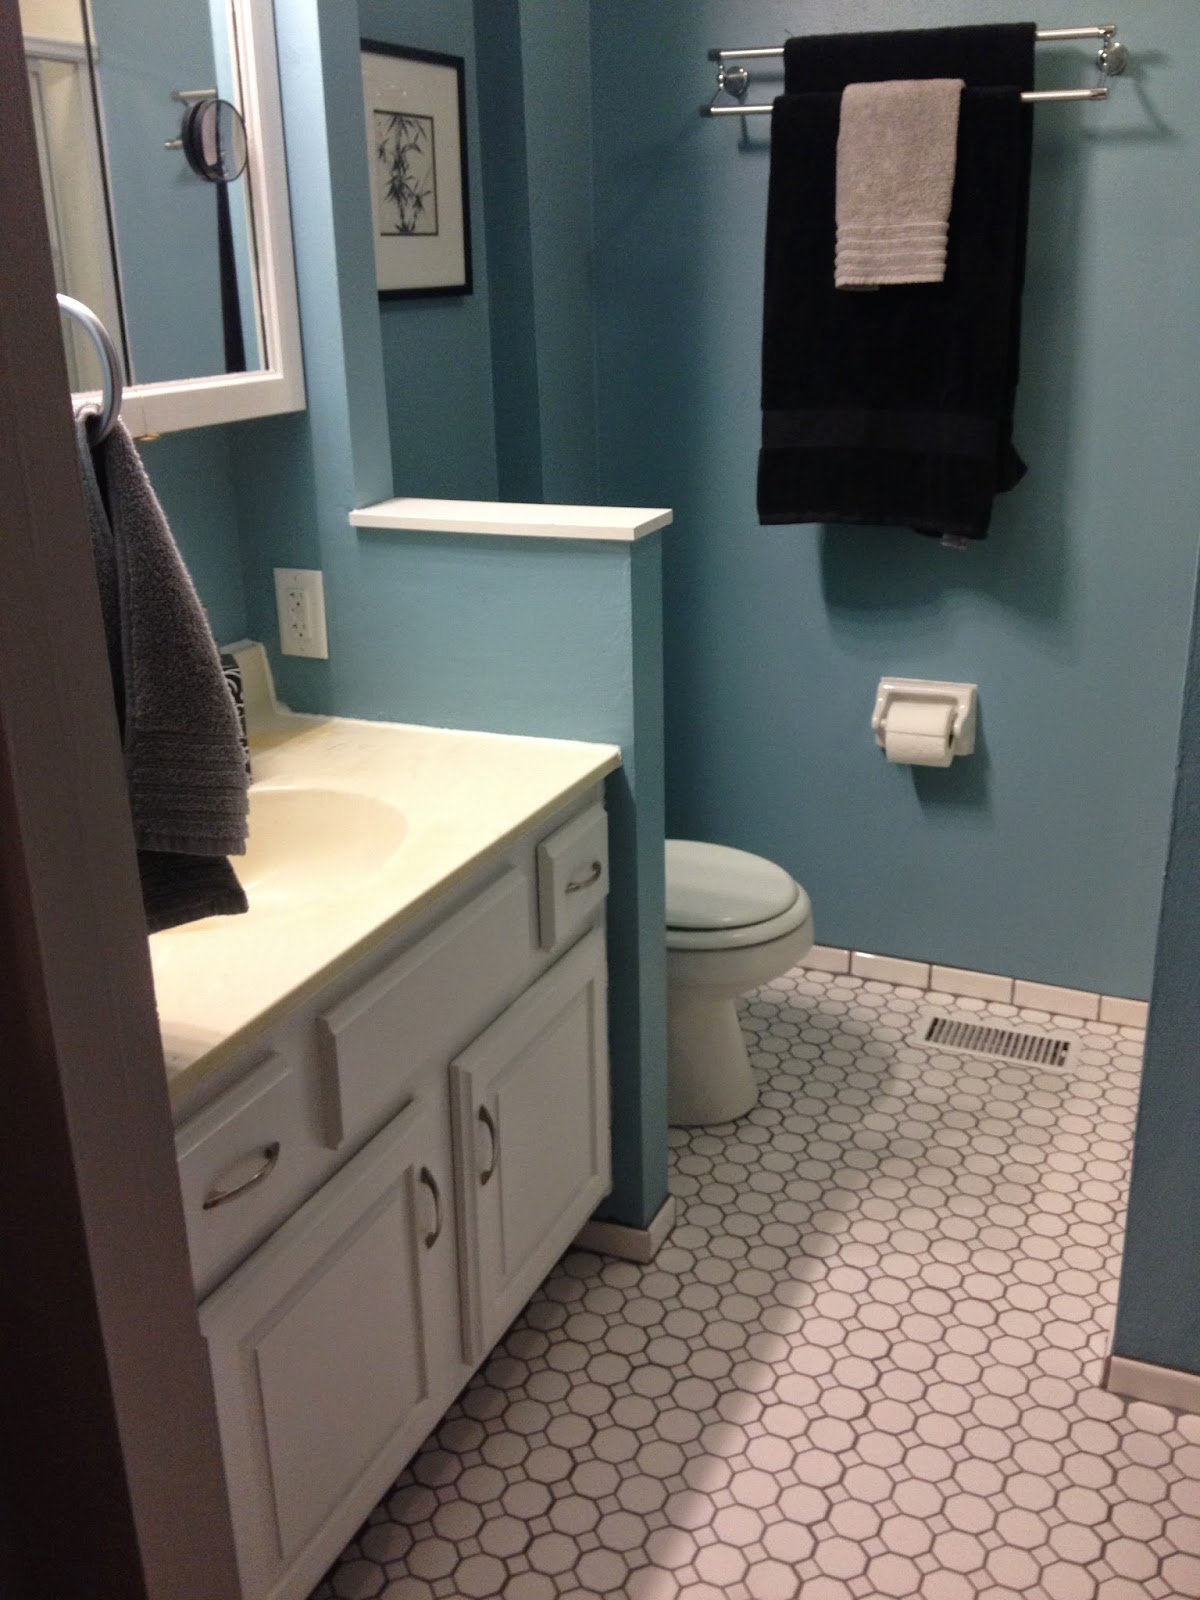 Small Bathroom Redone In A BIG Way!